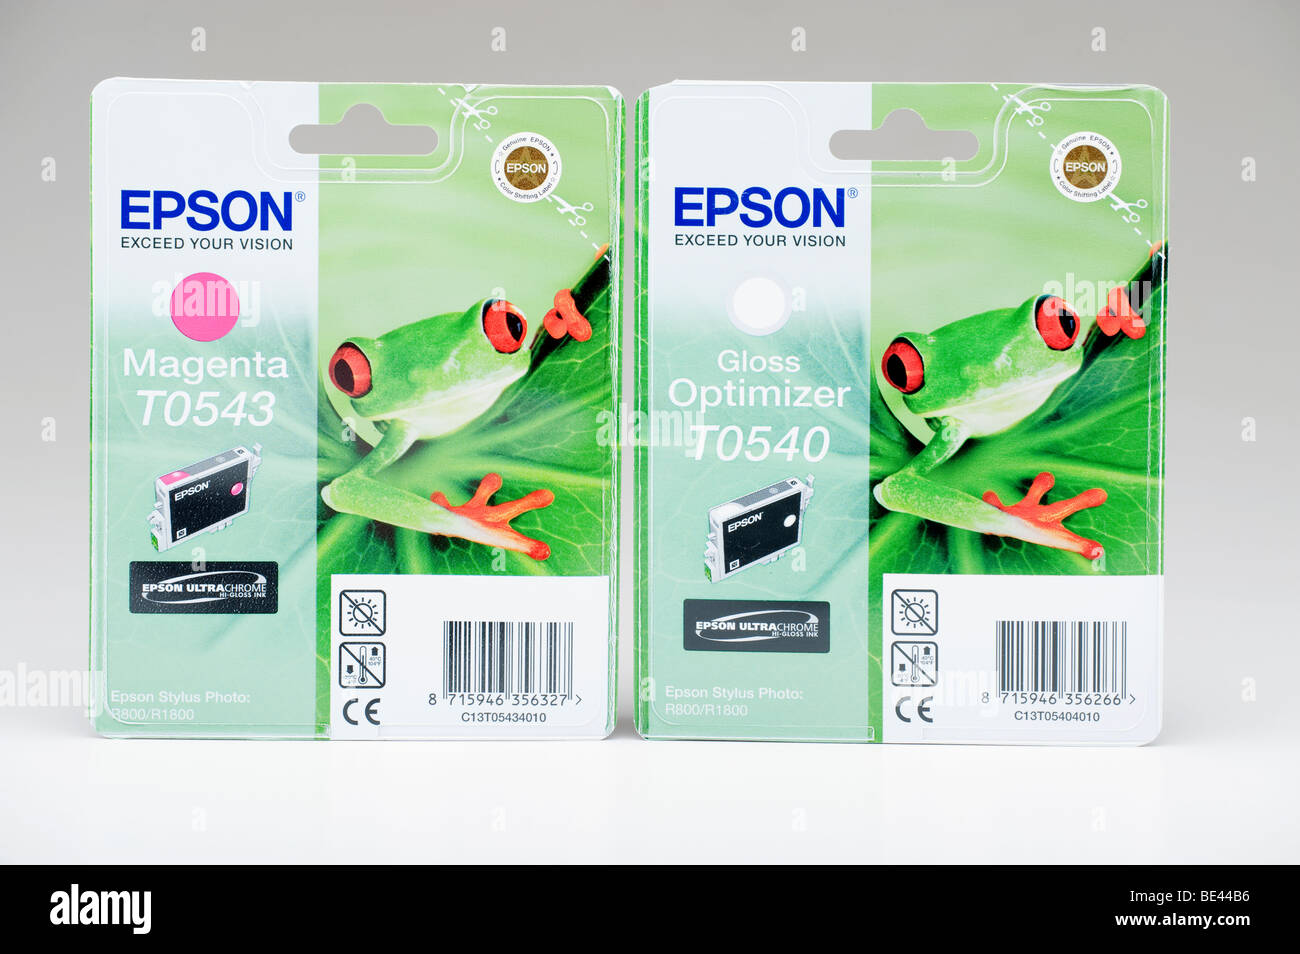 Two Epson sealed printer color cartridge packets - Stock Image